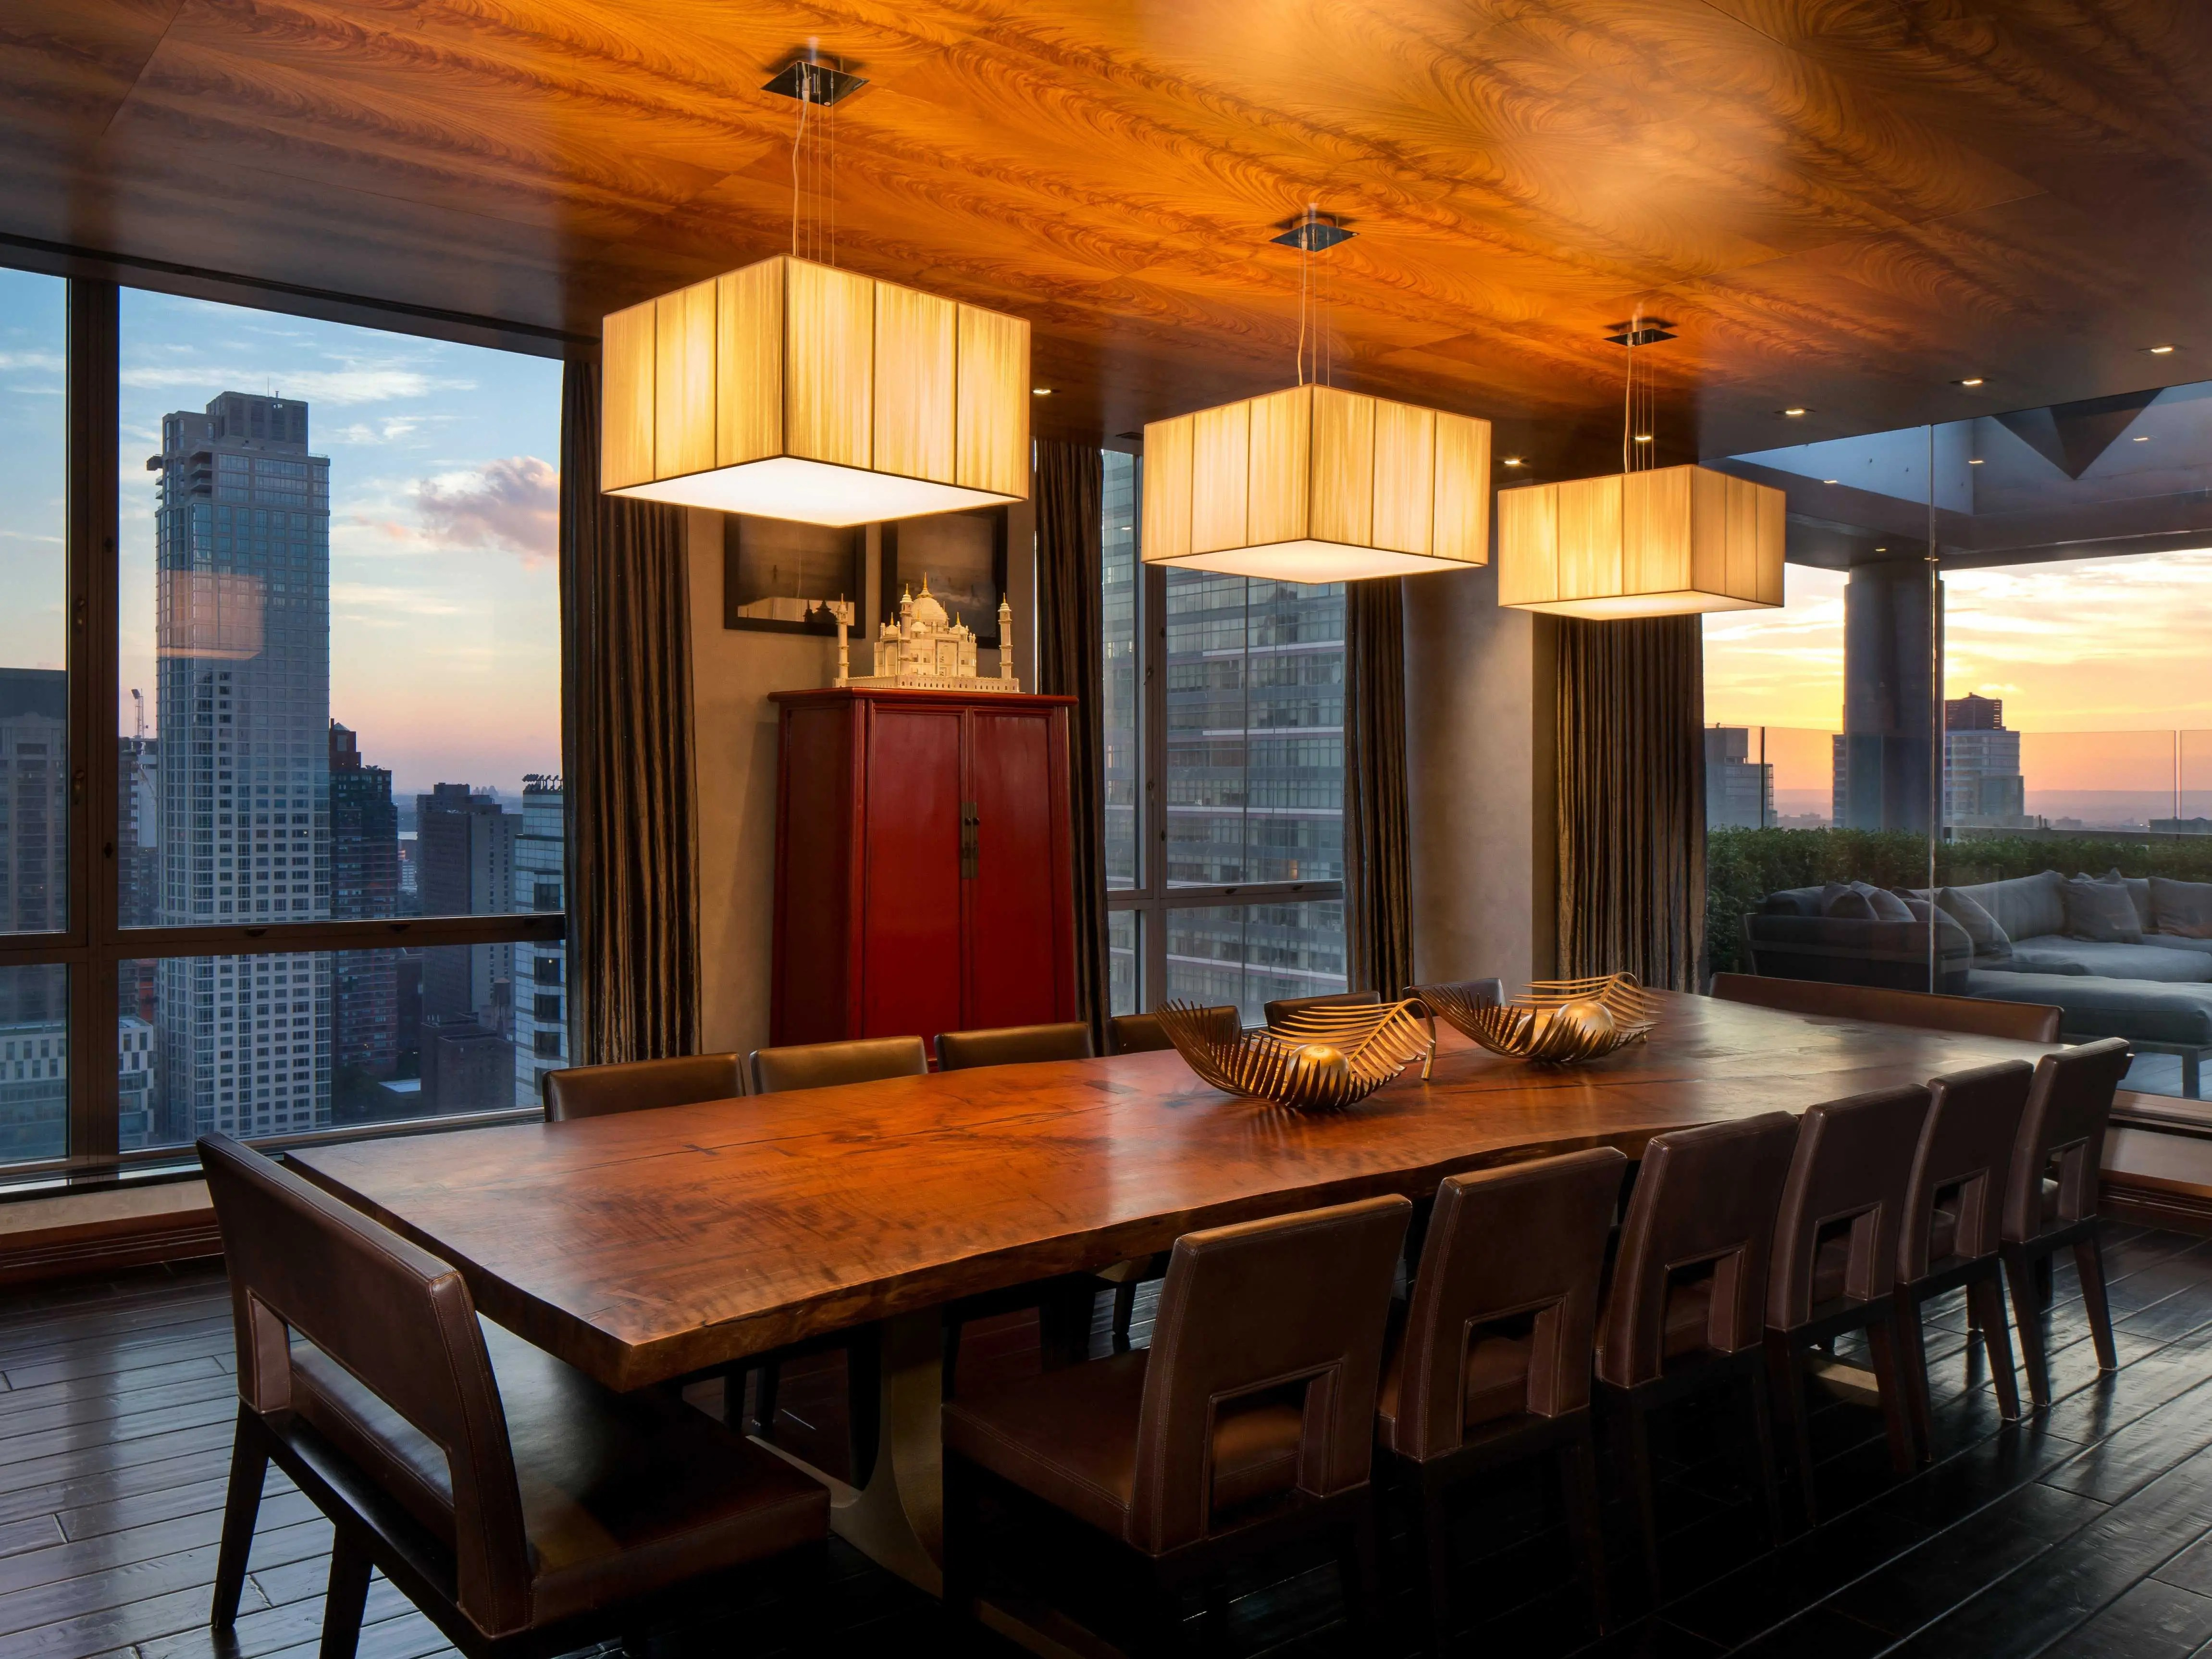 The dining room has a paneled, exotic wood ceiling and a massive table for entertaining guests.